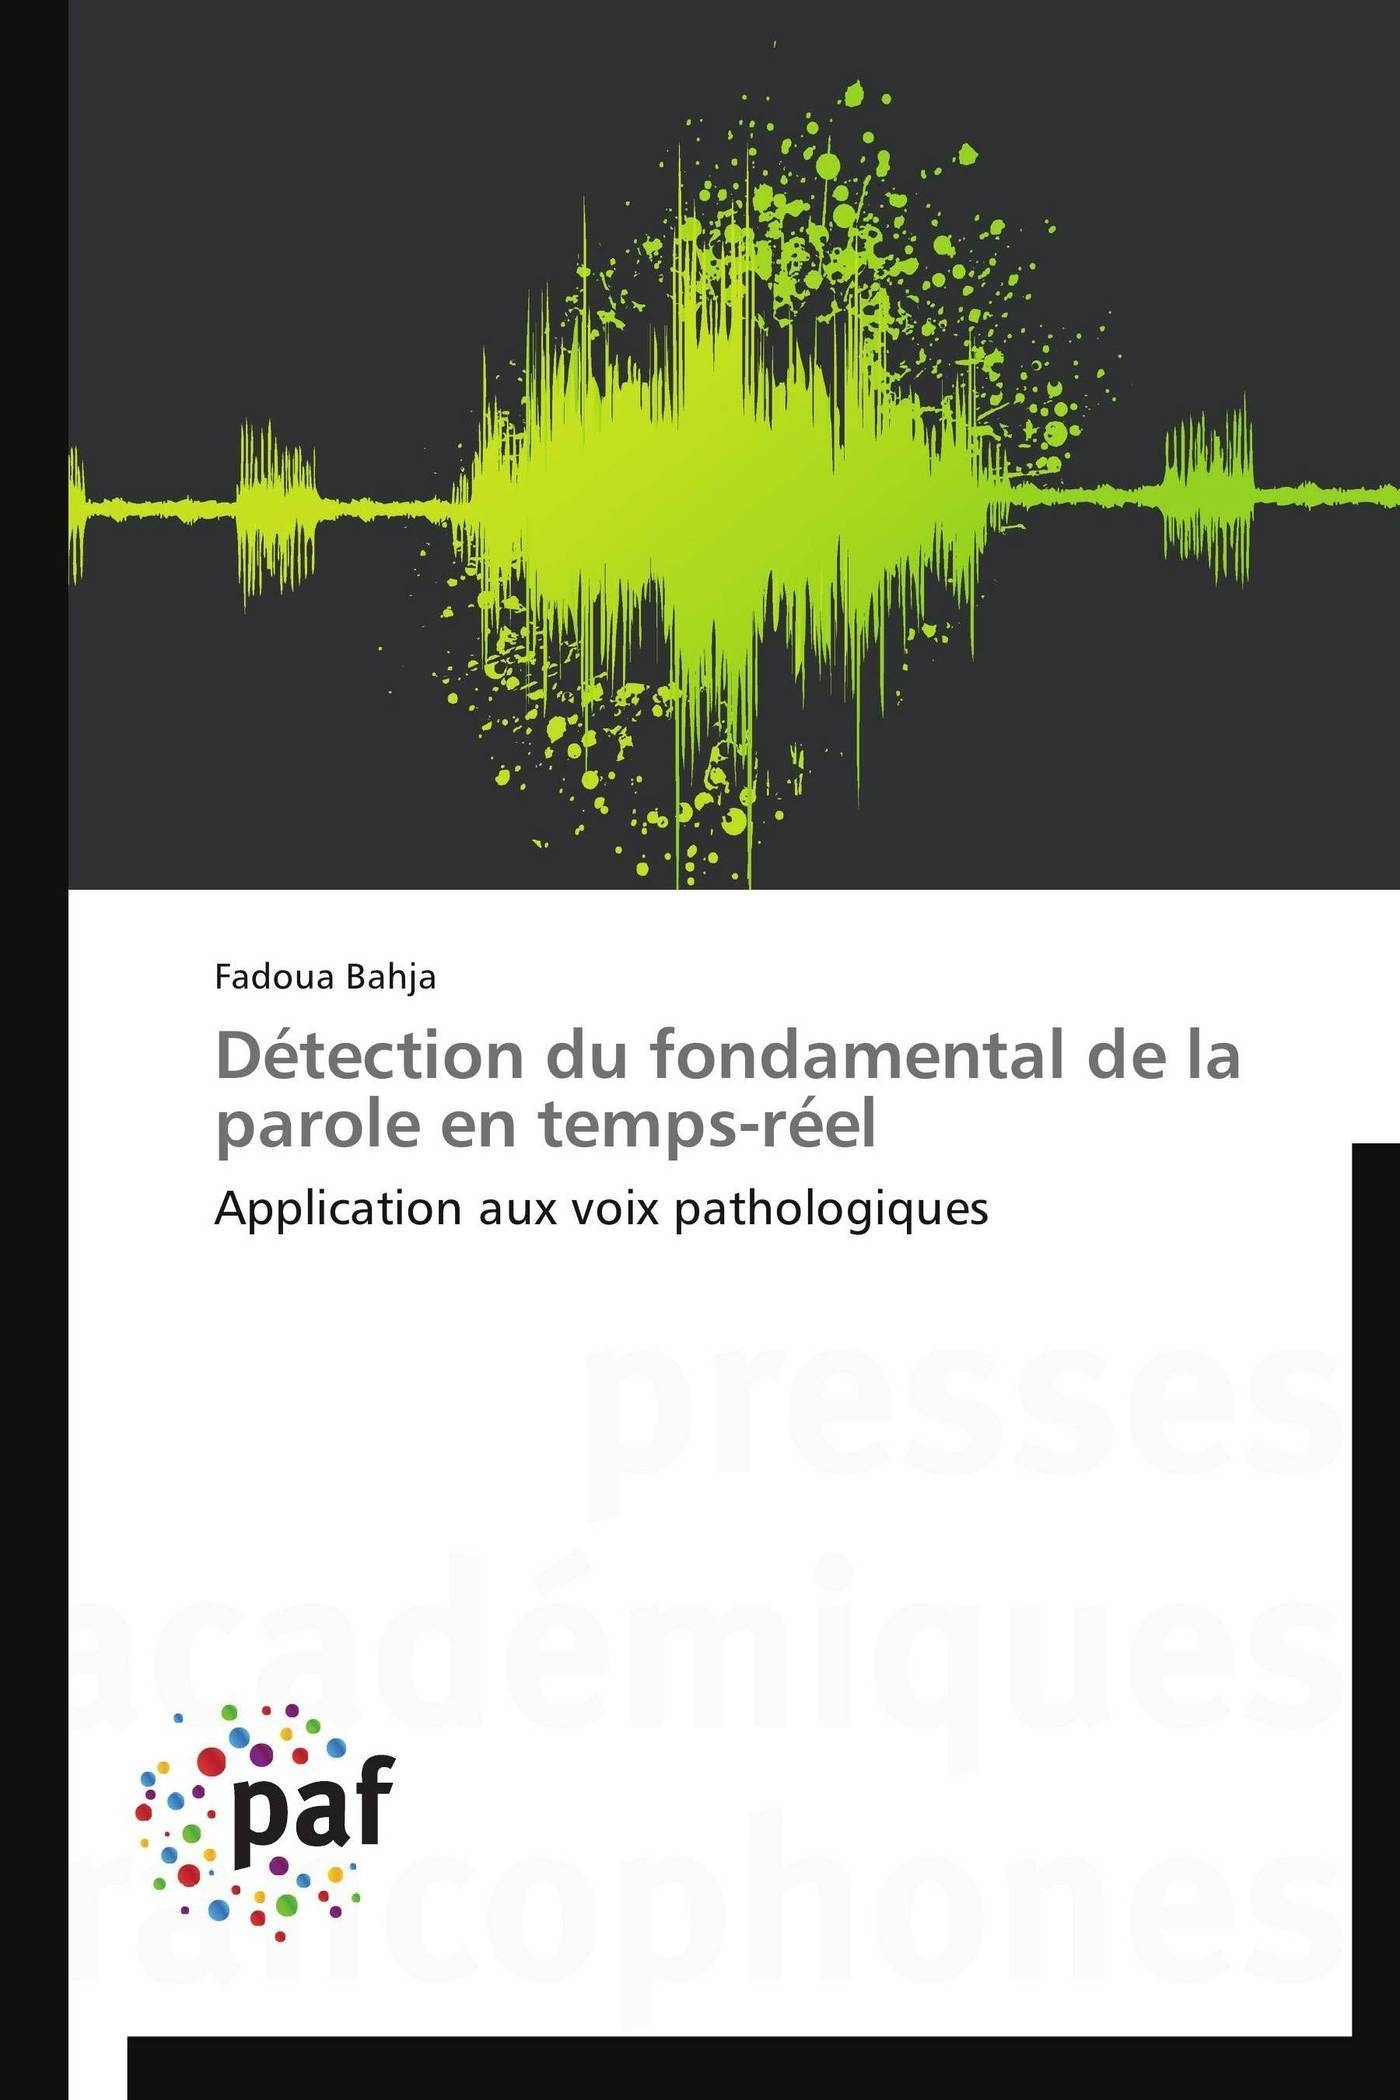 DETECTION DU FONDAMENTAL DE LA PAROLE EN TEMPS-REEL